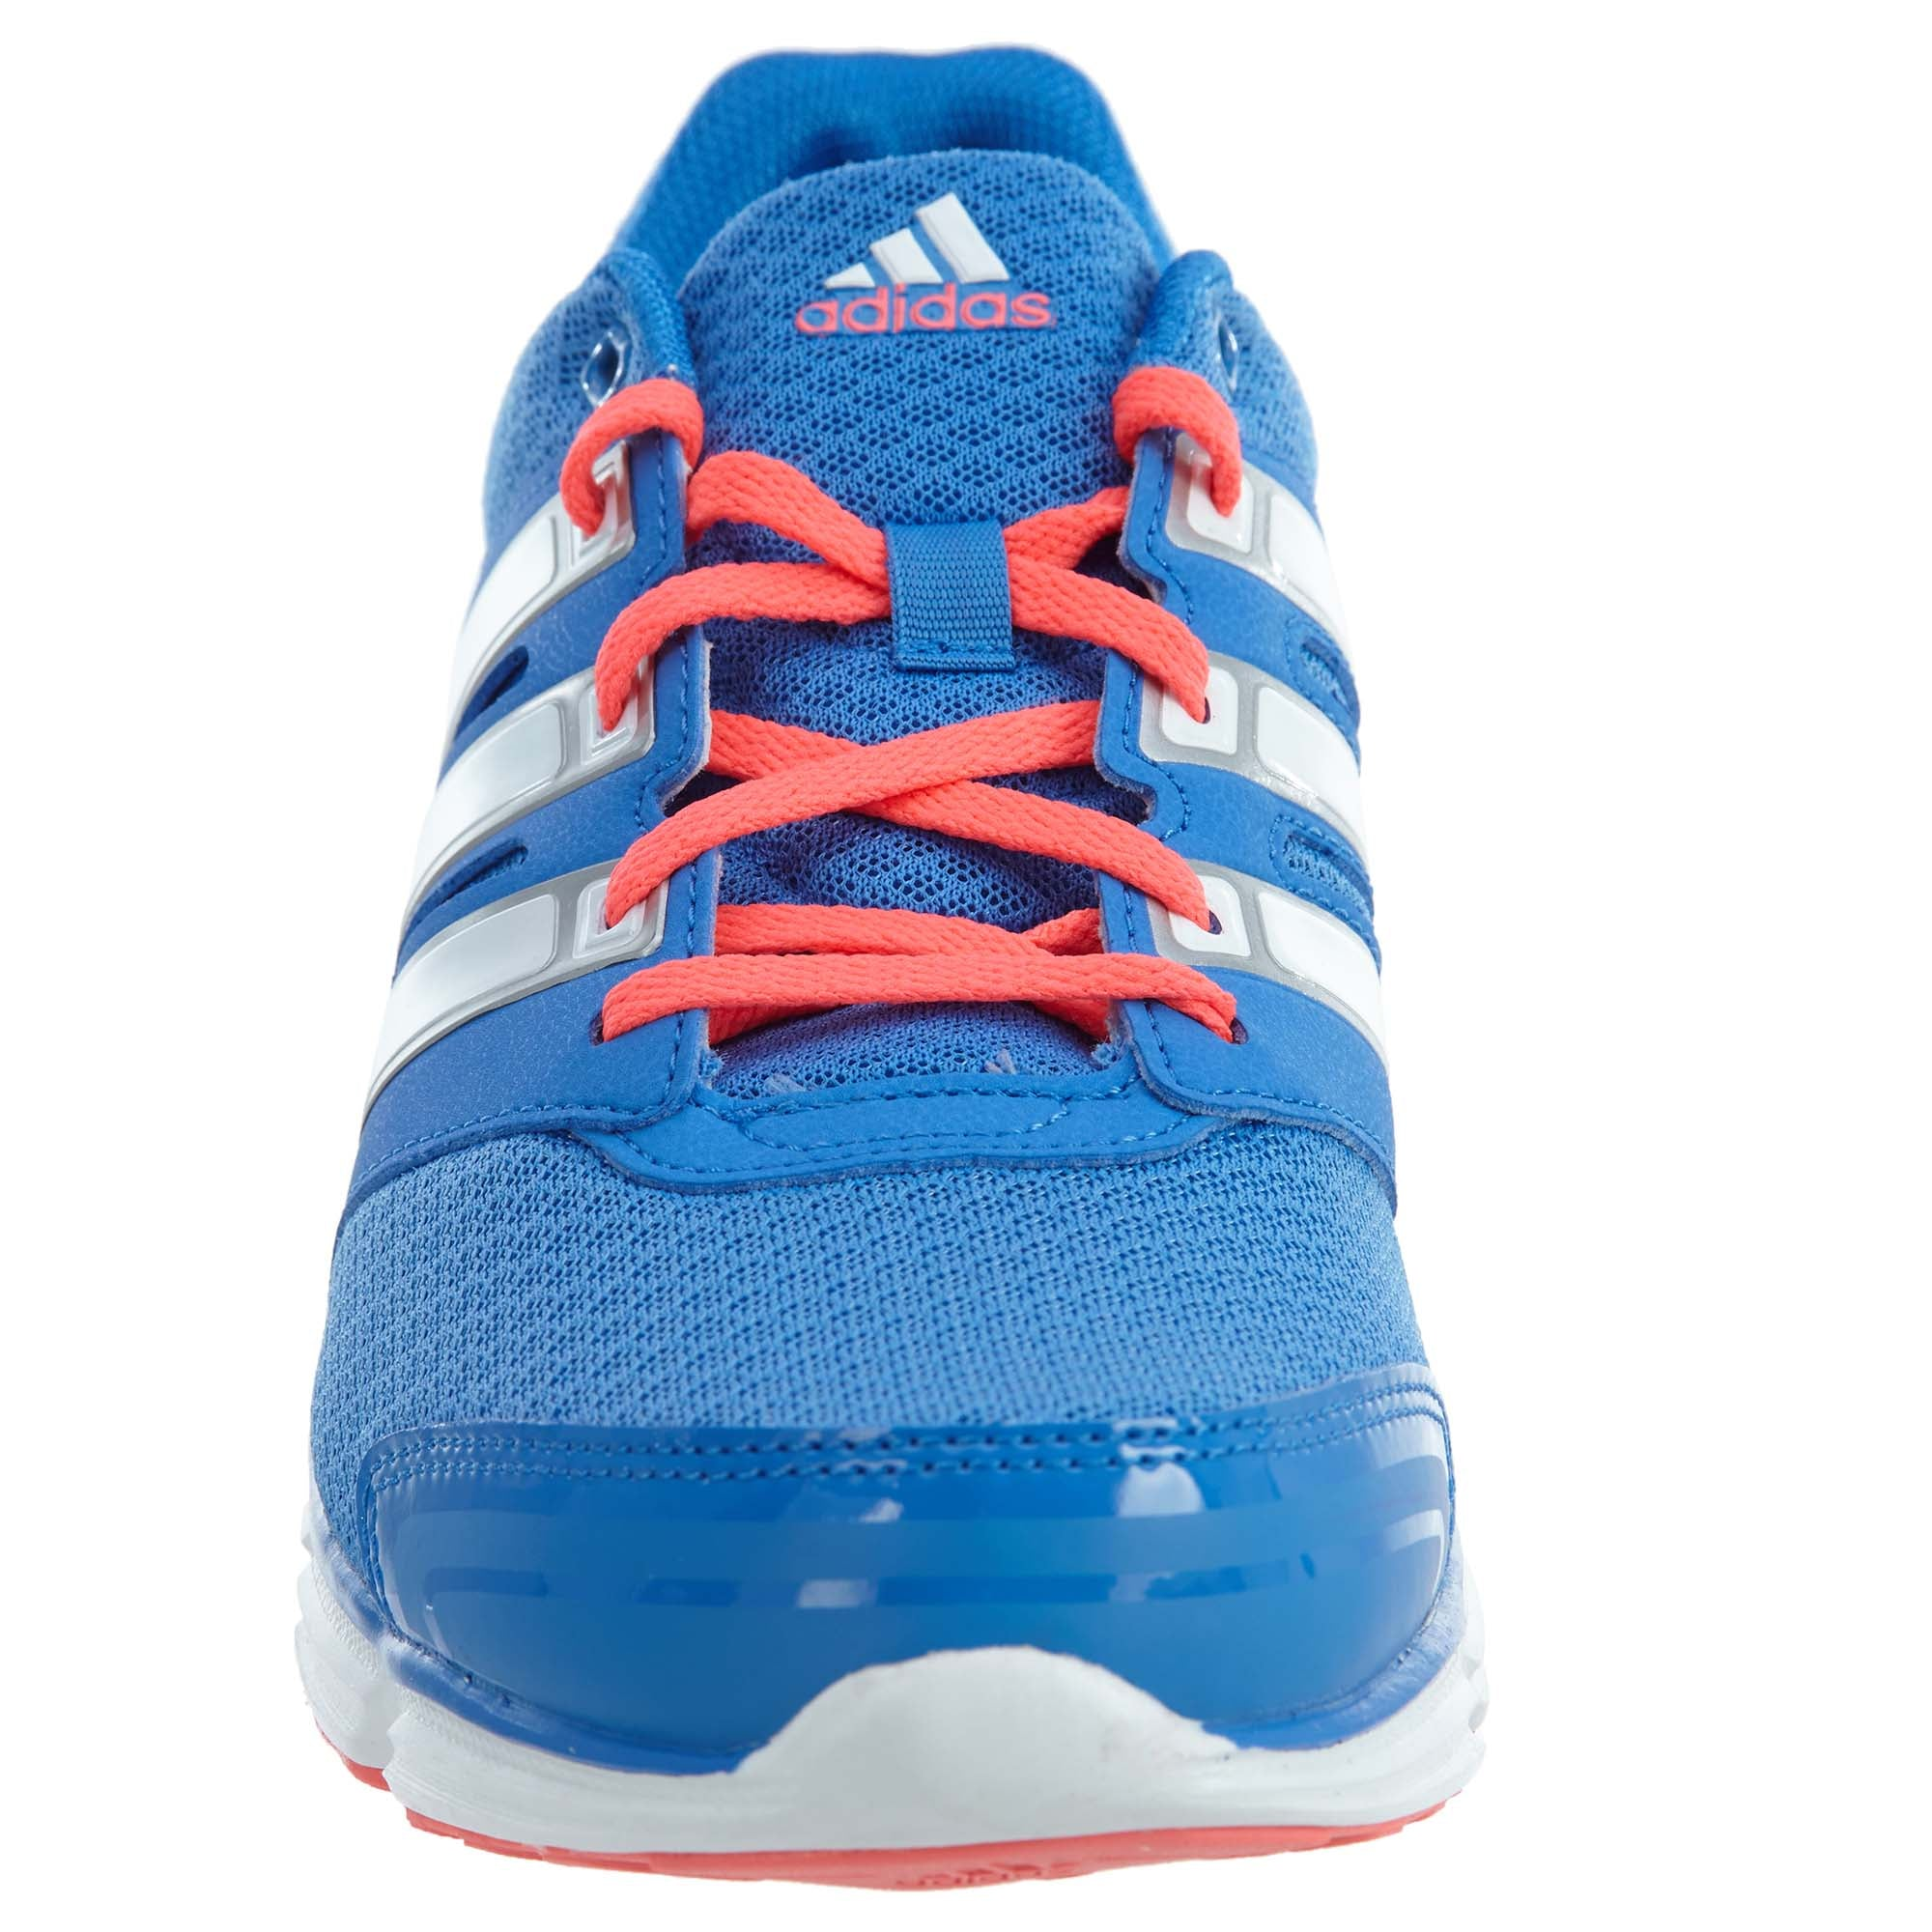 Adidas Falcon Pdx Womens Style : G99097